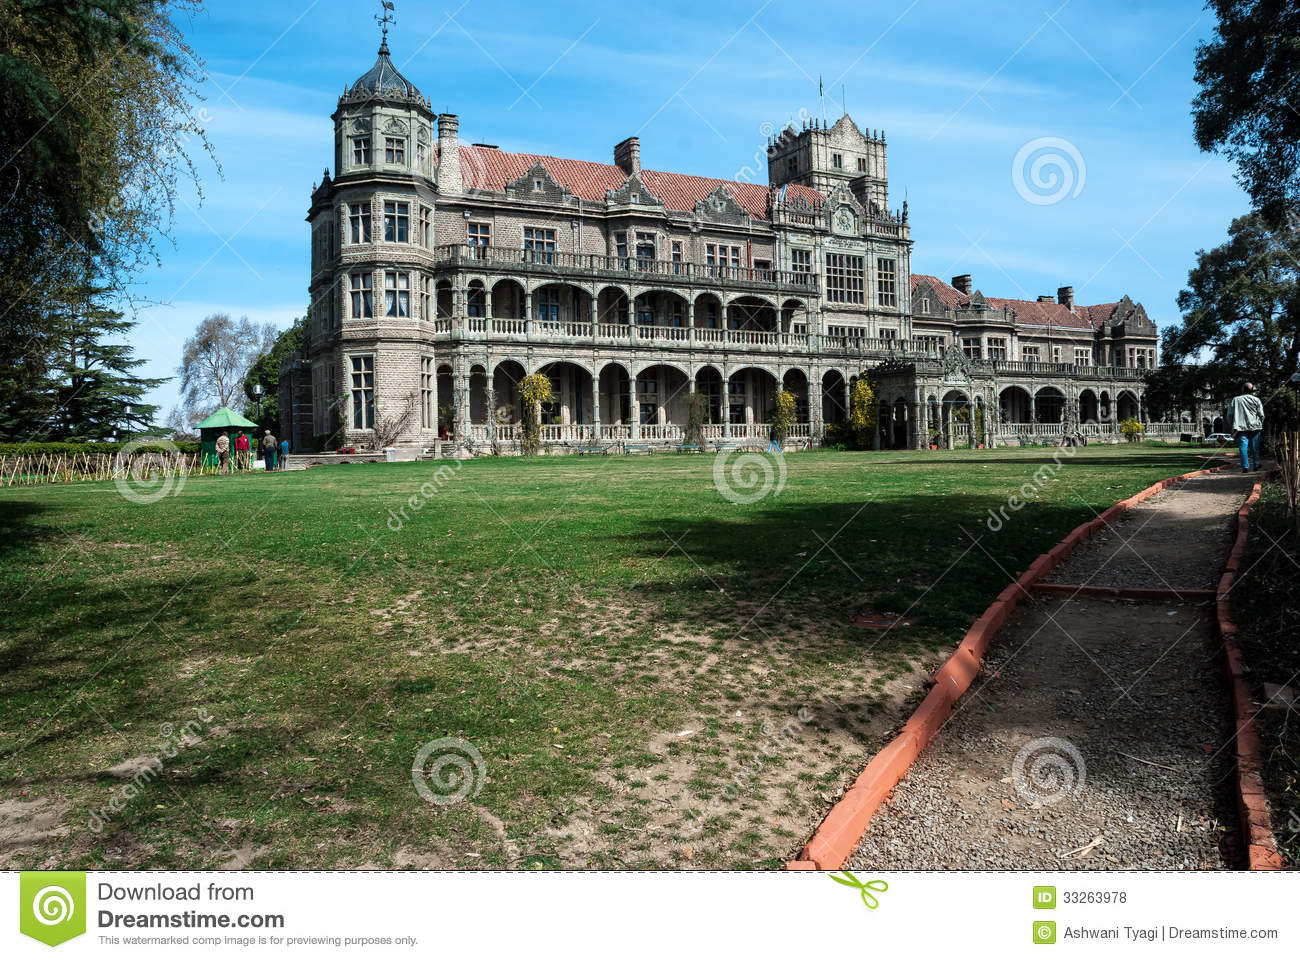 Viceroys lodge in Scottish baronial style built during the British raj ...